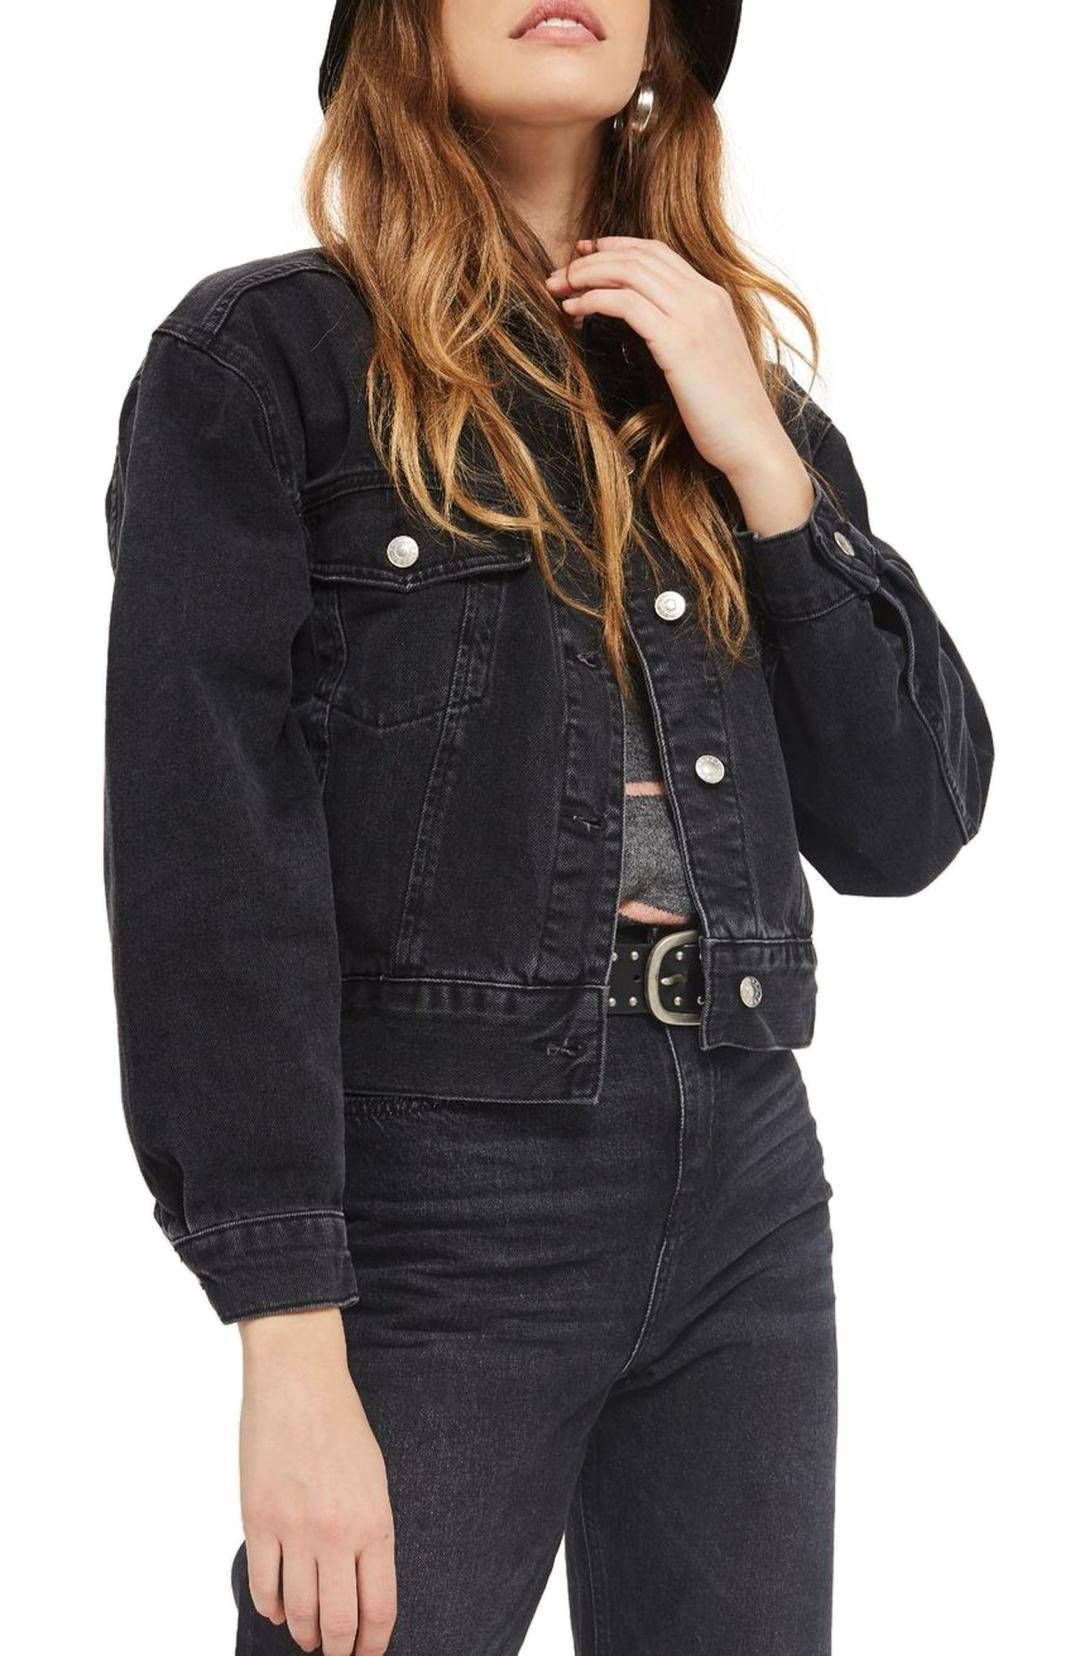 10 Under 100 Essentials For Every College Fashion Girl Cropped Denim Jacket Jean Jacket Outfits Cropped Denim [ 1656 x 1080 Pixel ]